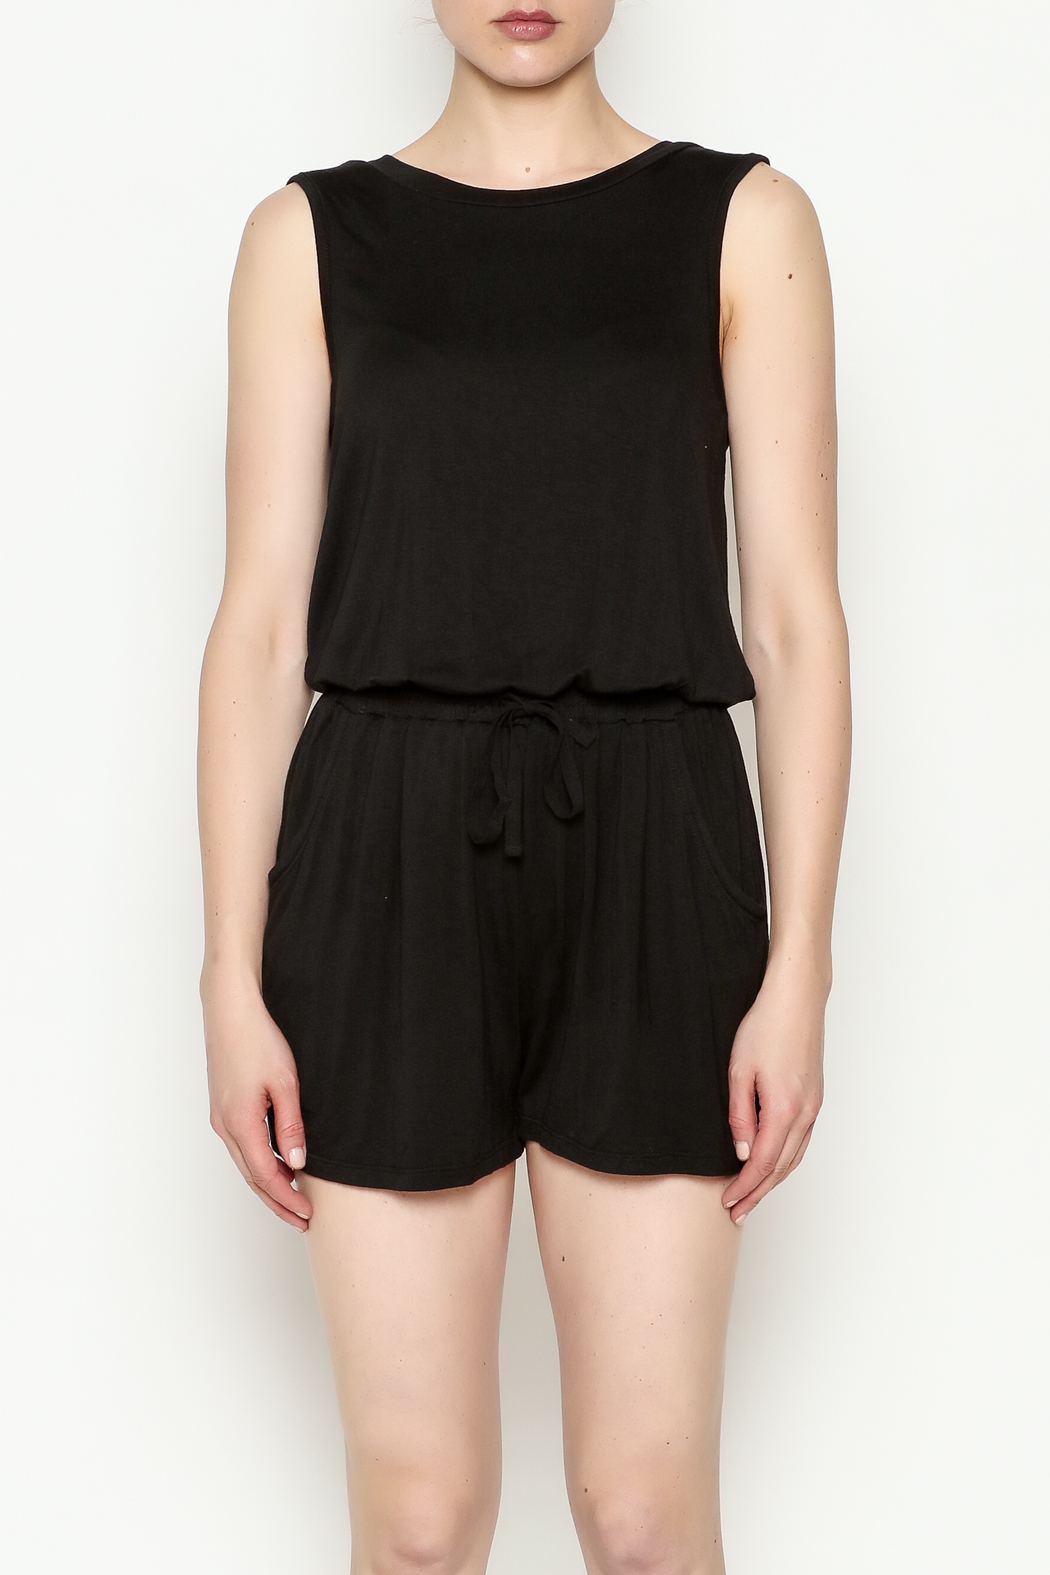 Olive & Oak Black Sleeveless Romper - Front Full Image